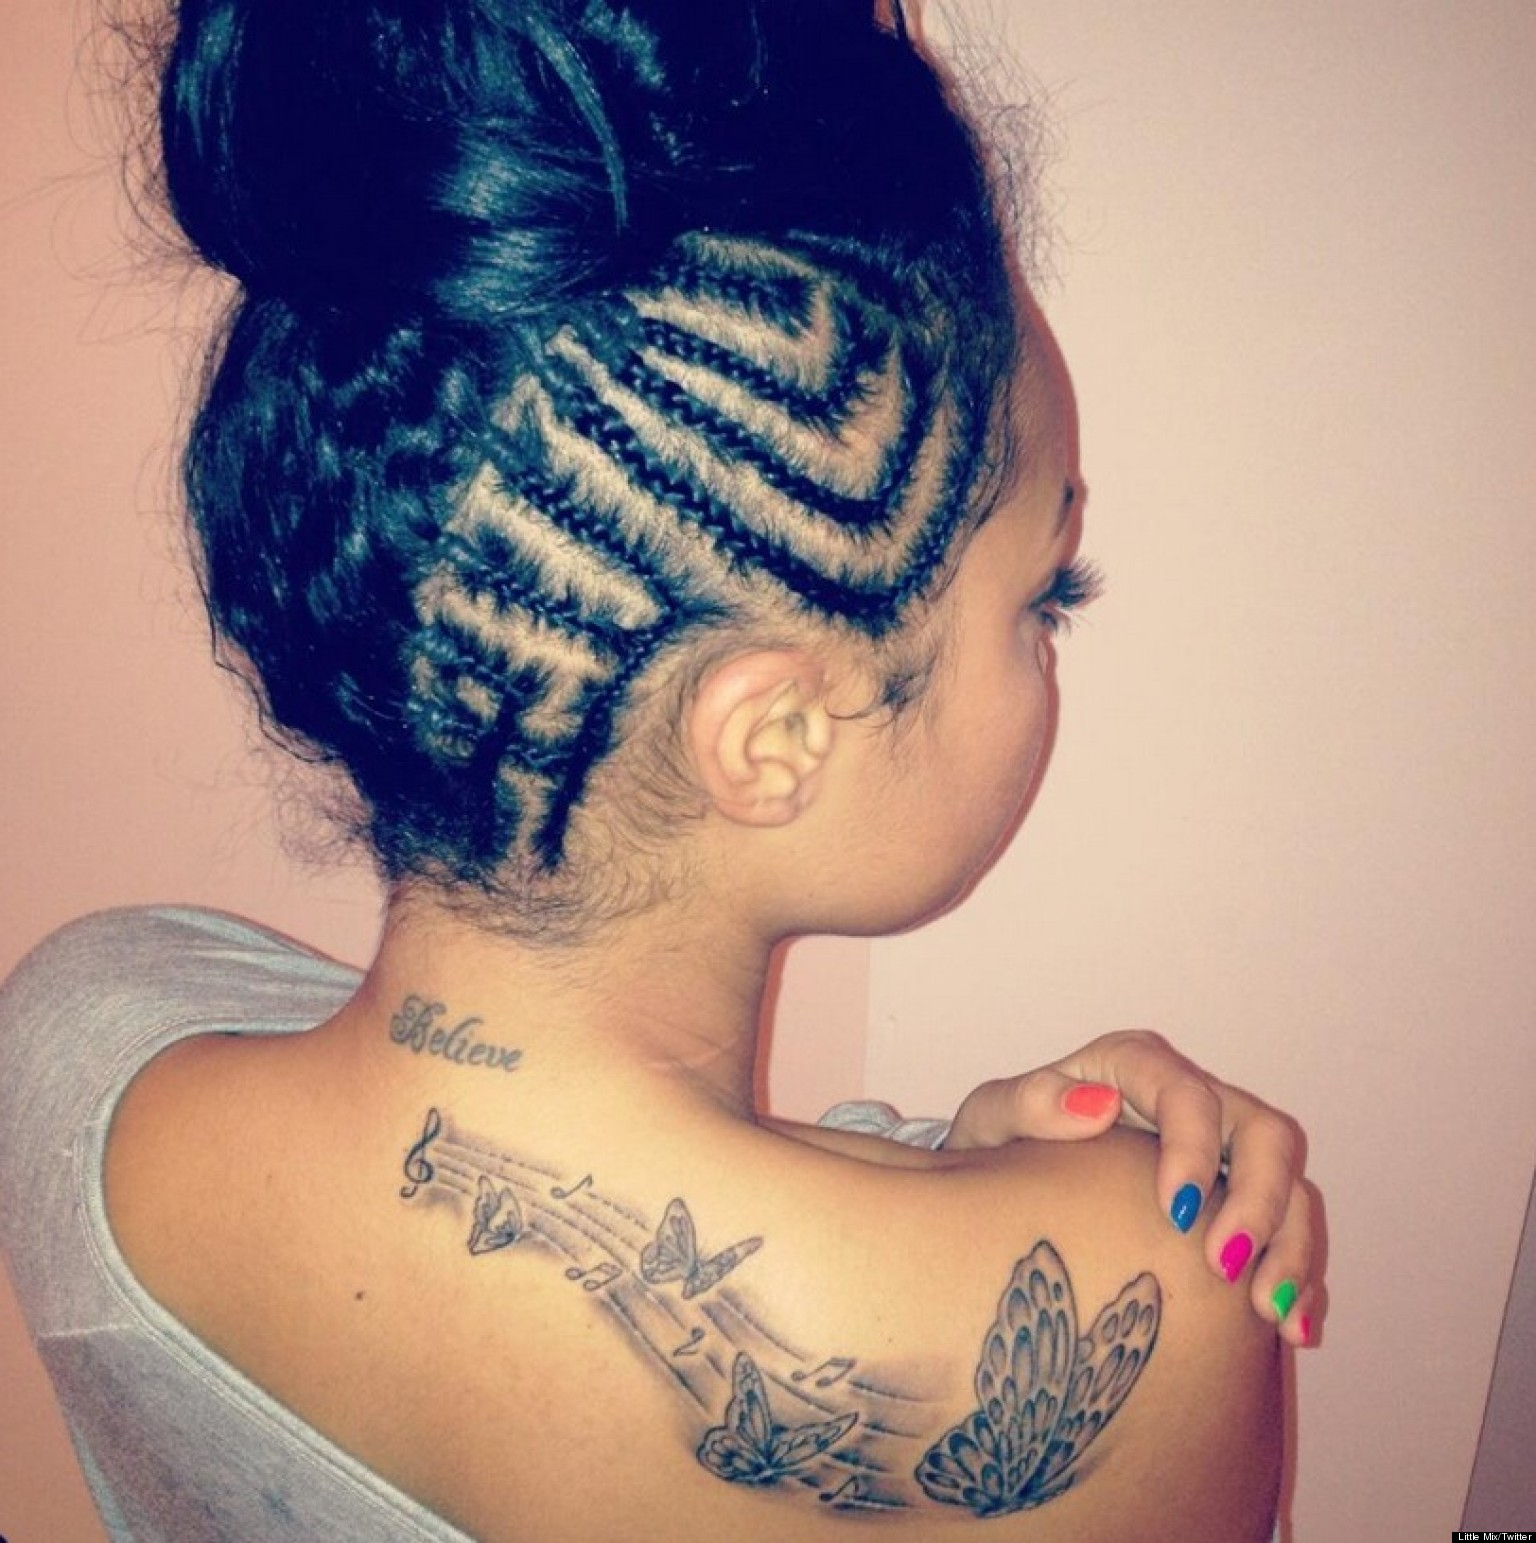 Little Mixs Leigh-Anne Pinnock Debuts New Tattoo (PIC)